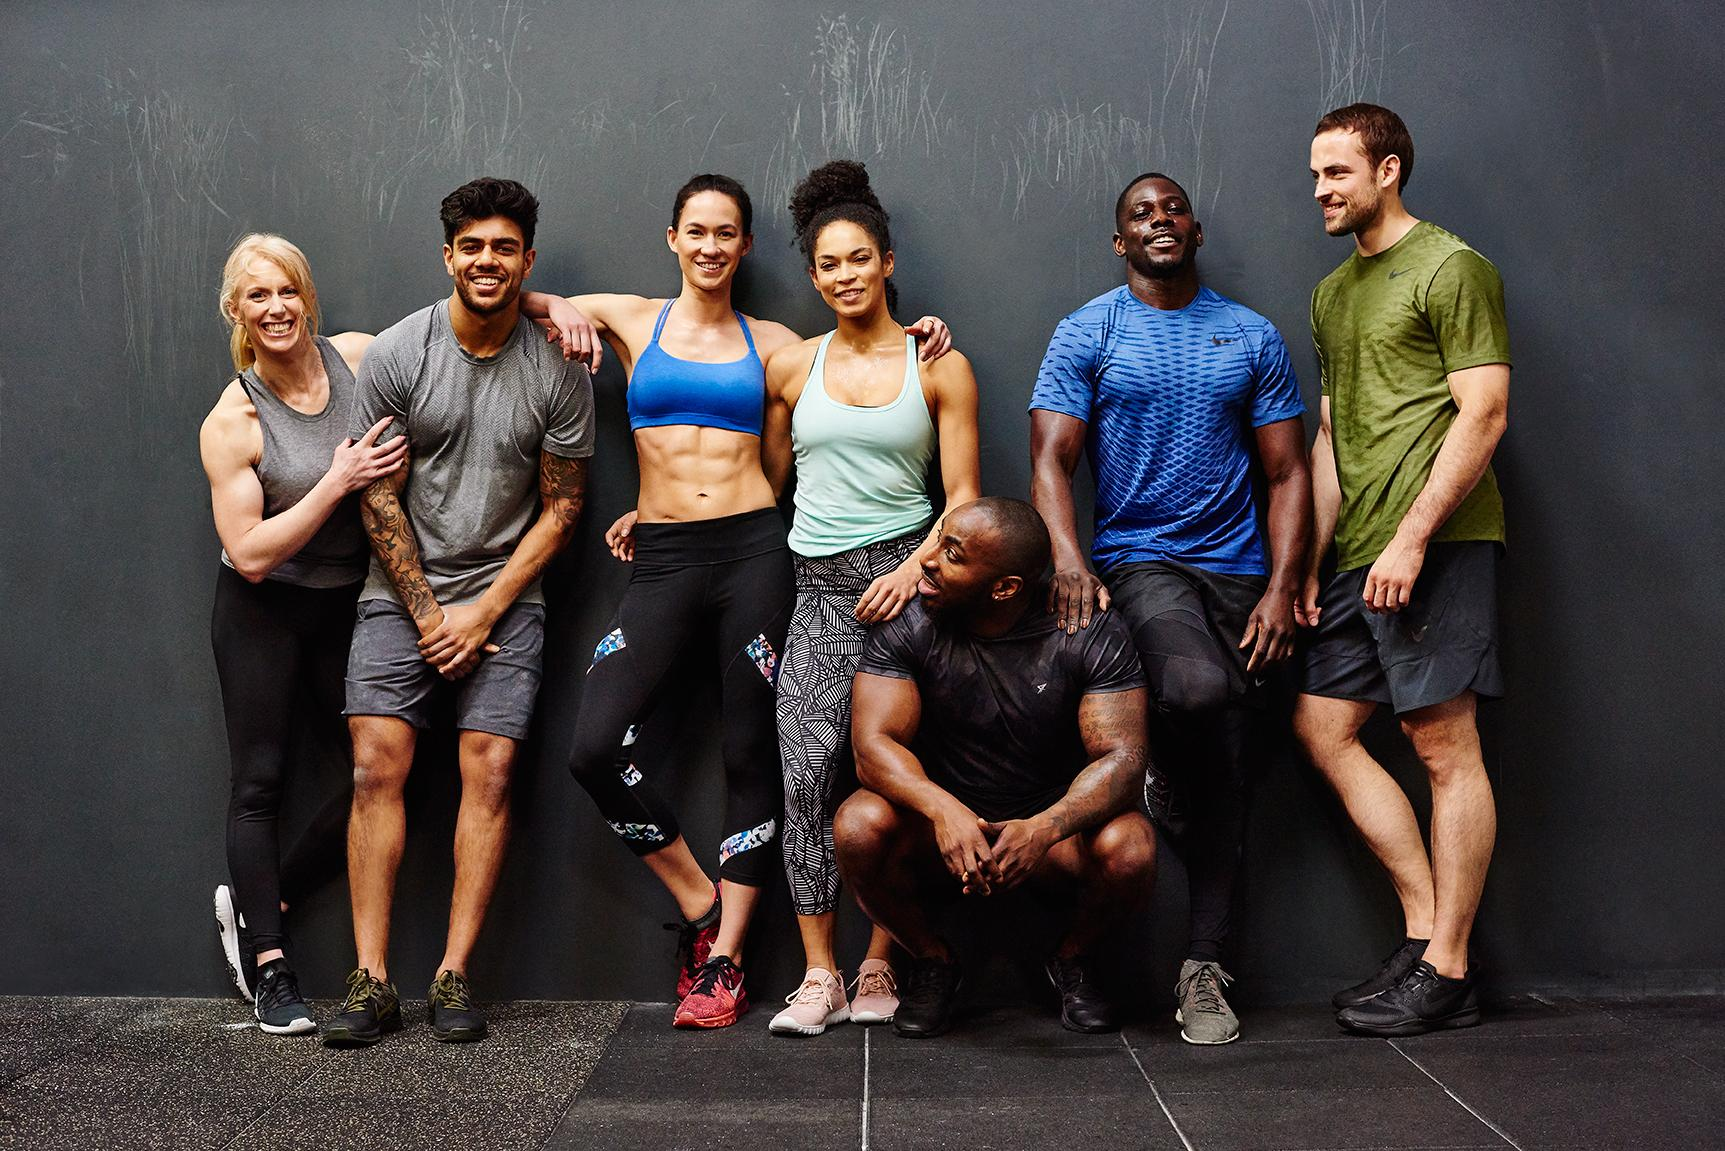 Is Personal Training The Career For You? Open